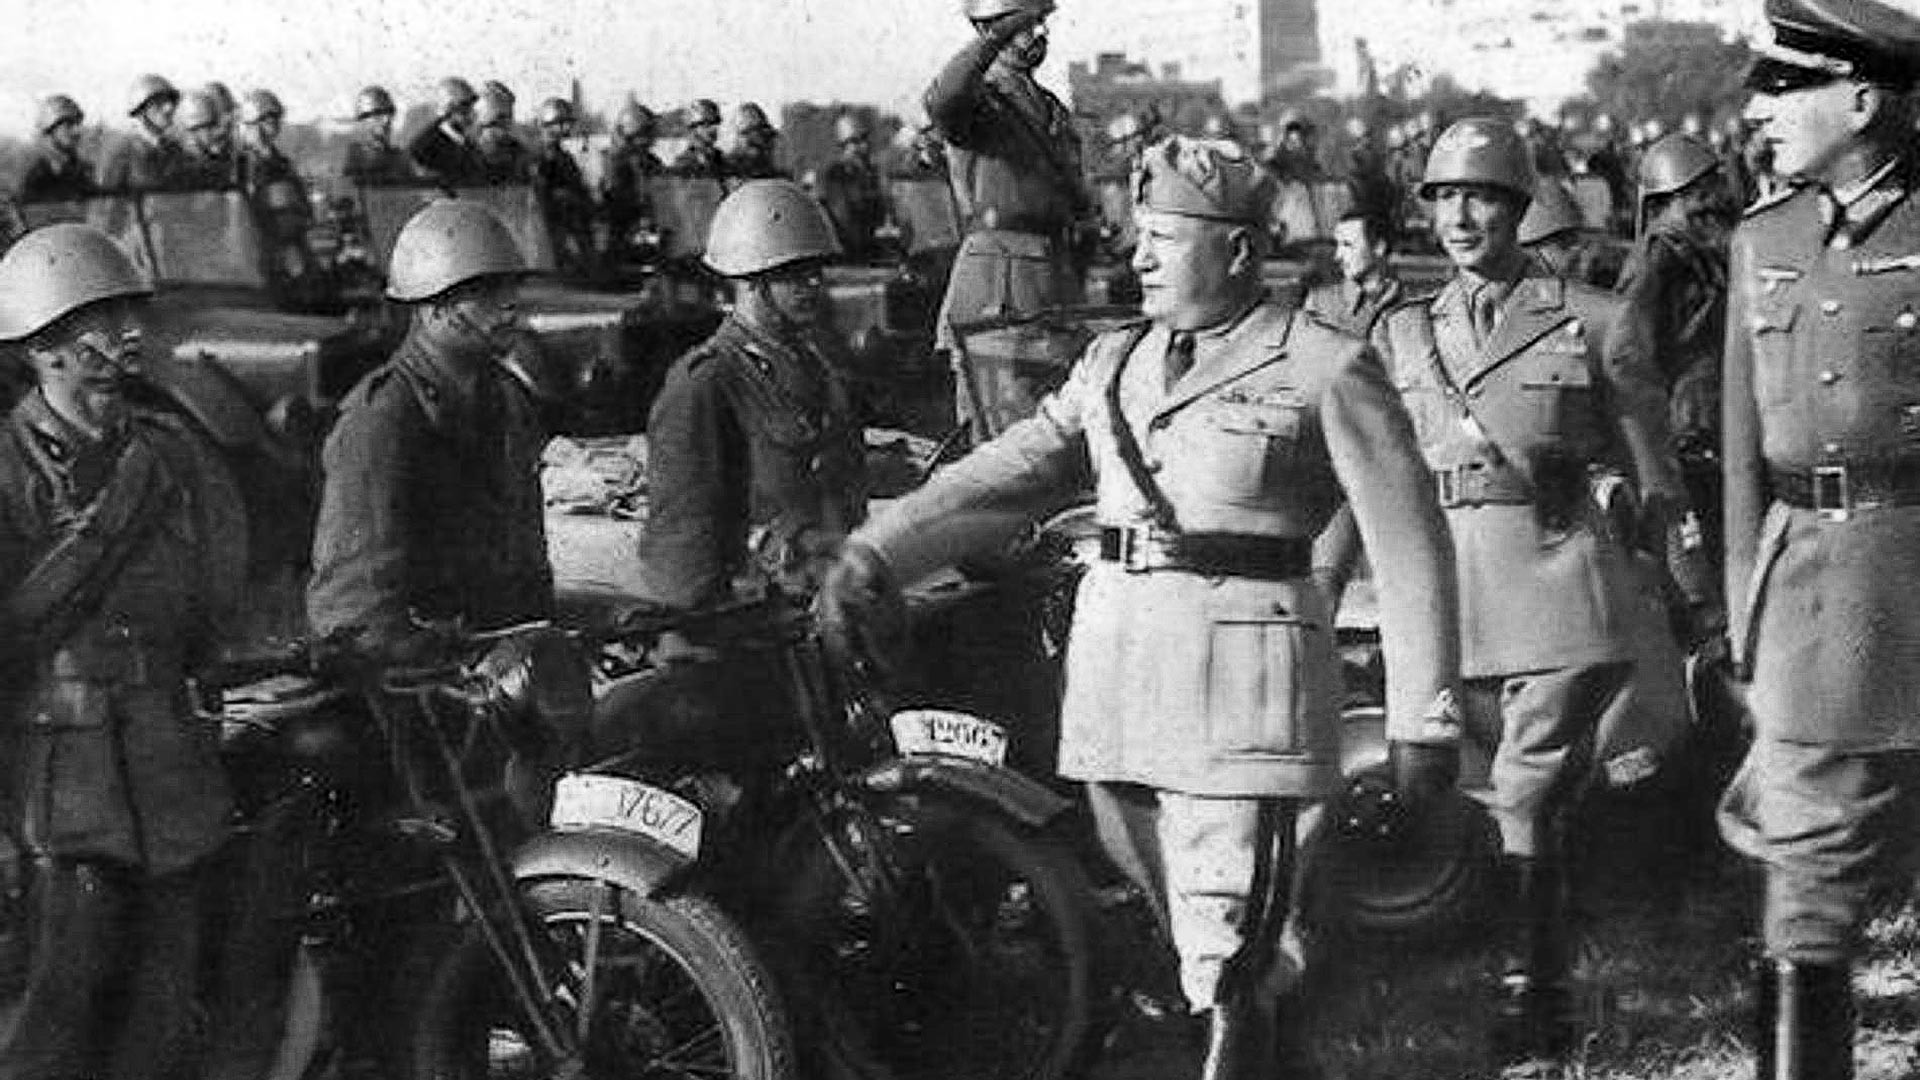 Benito Mussolini visits Italian troops on the Eastern front.